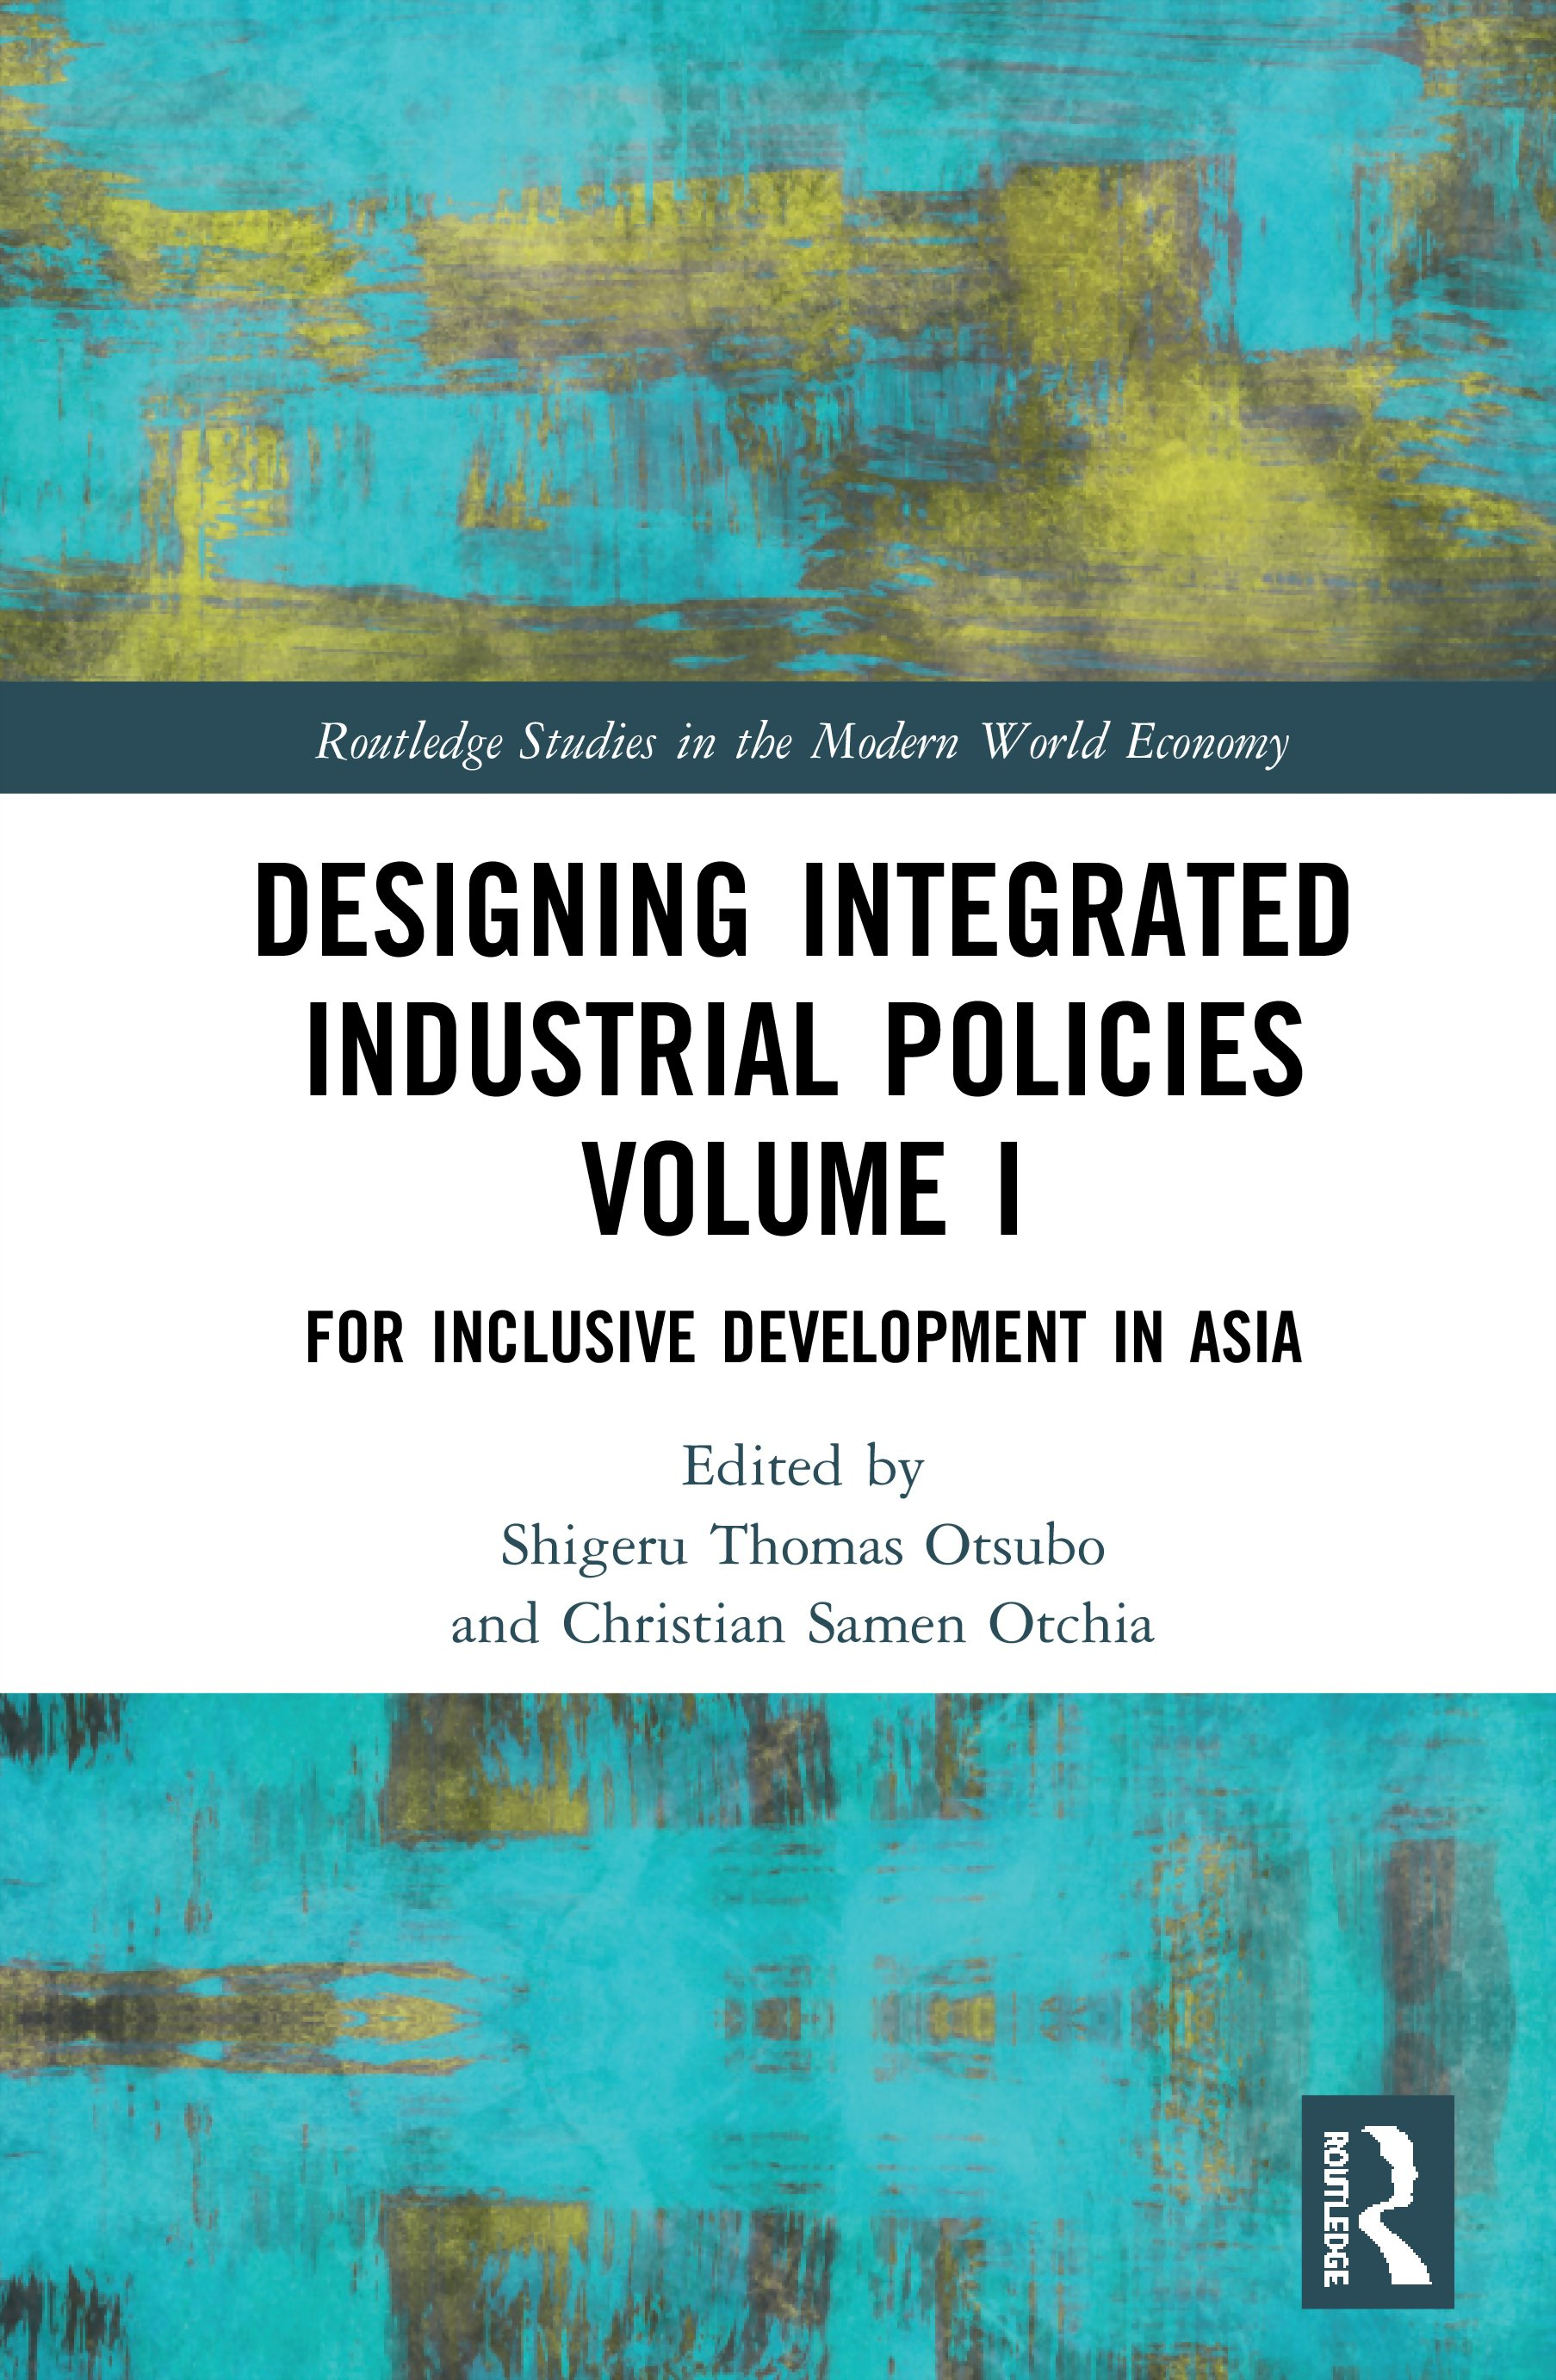 Designing Integrated Industrial Policies Volume I